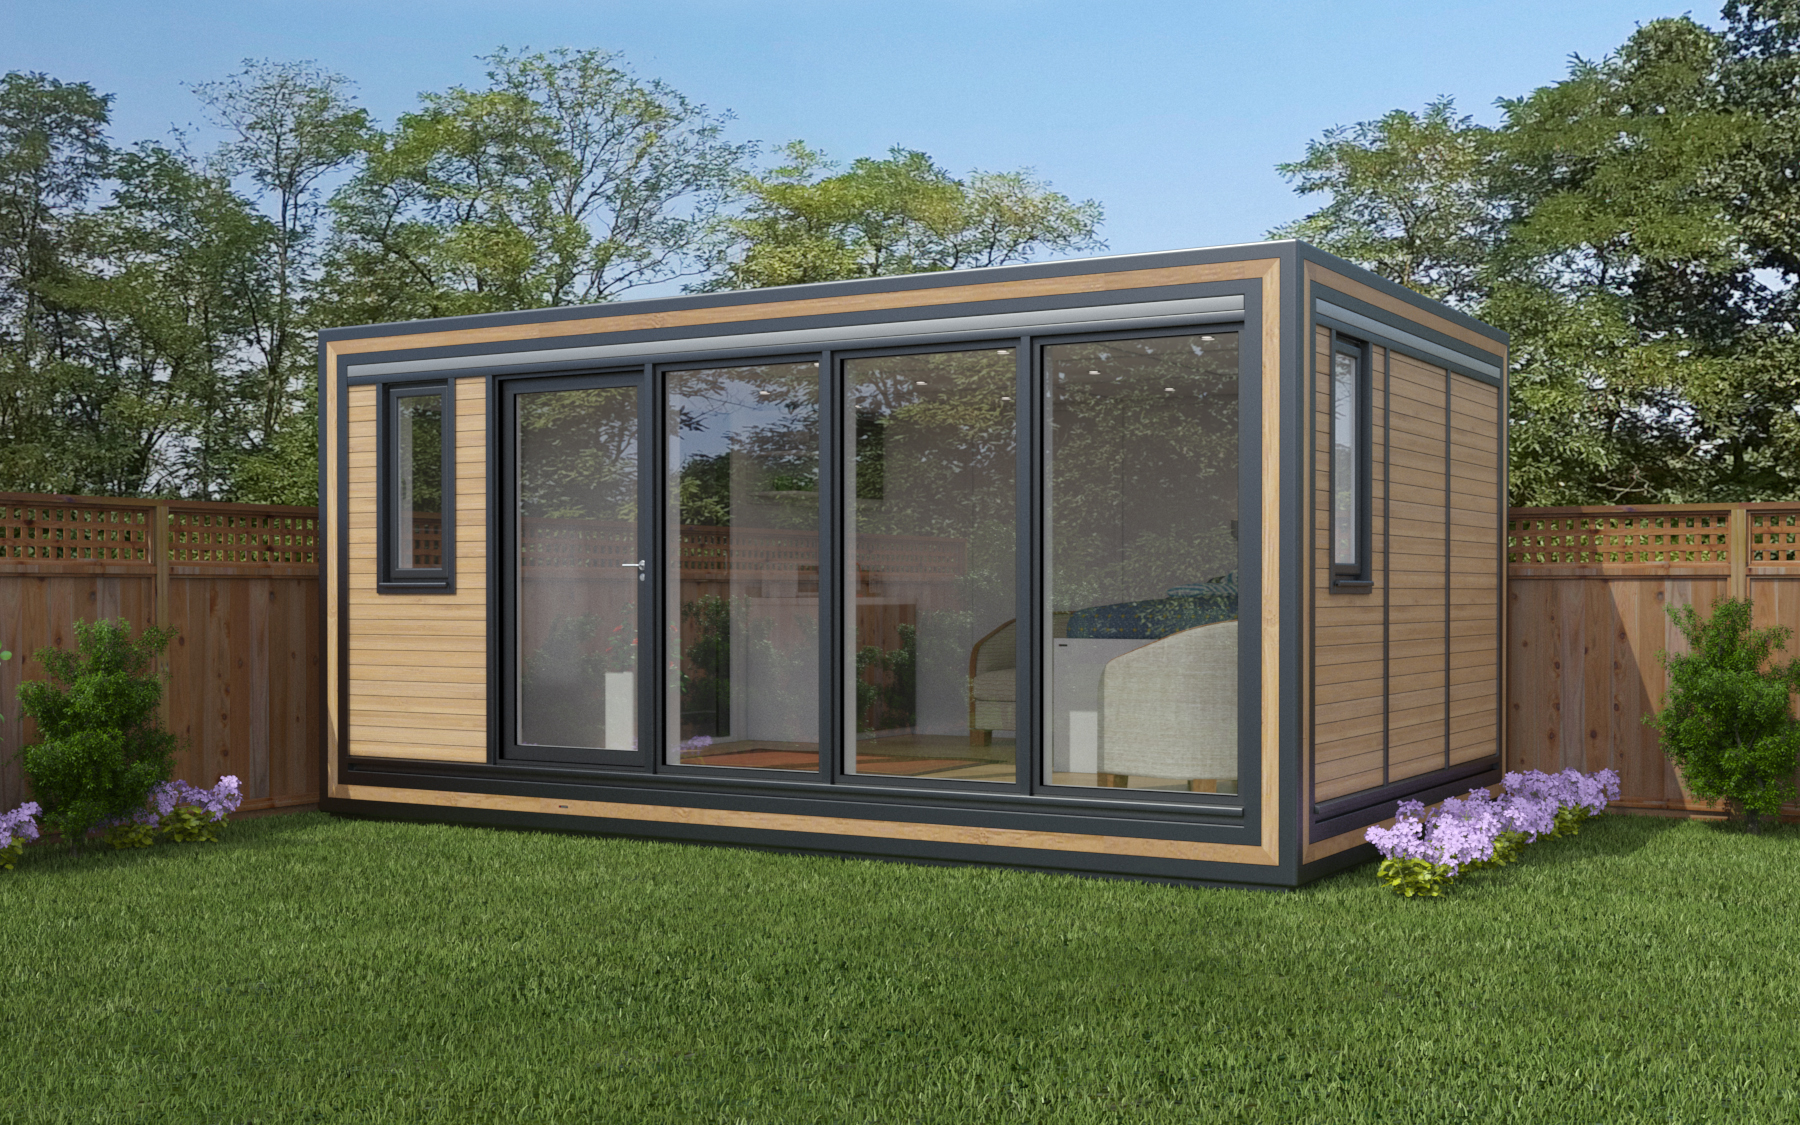 ZEDBOX 530  (5 x 3)  Internal Size: 5330 x 3188  External Size: 5800 x 3658  Bed Options: Single or Double  Kitchen Options: Micro or Premier  Wet Room Options: Yes  Portico: No  Price:  £25,000     Optional Extras    Request Zedbox Catalogue